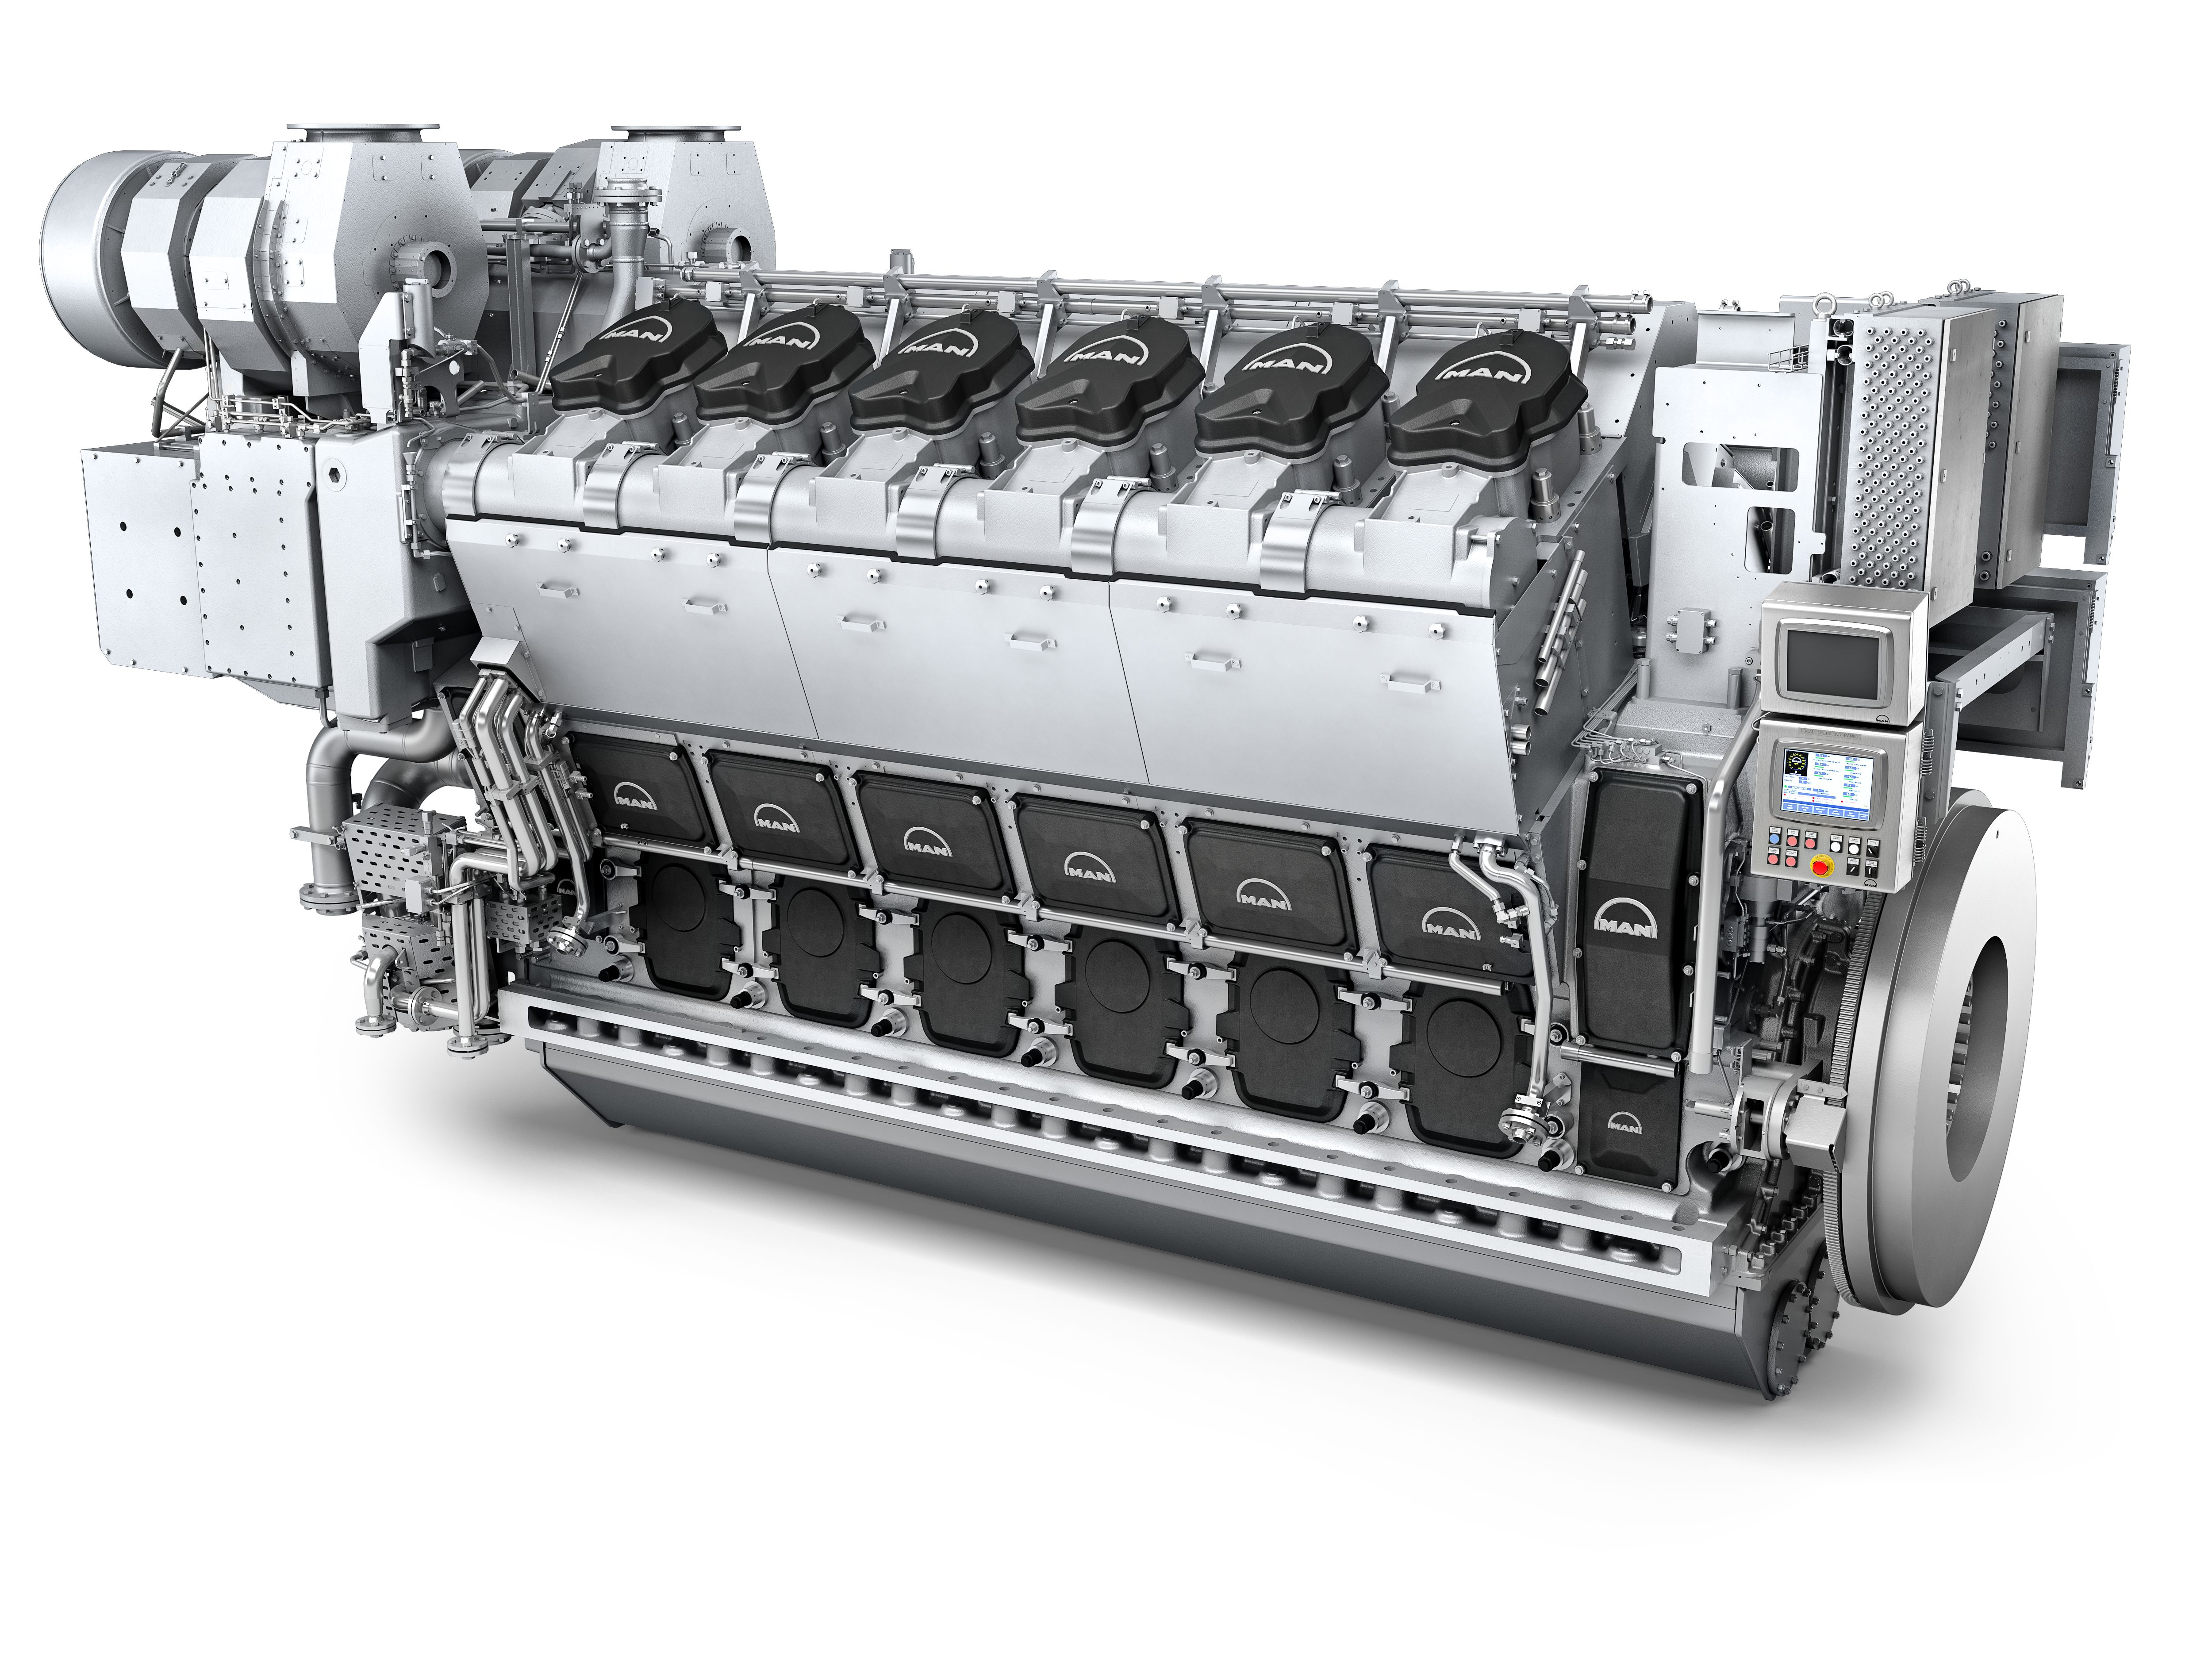 Man Diesel Amp Turbo And Japanese Engine Manufacturer